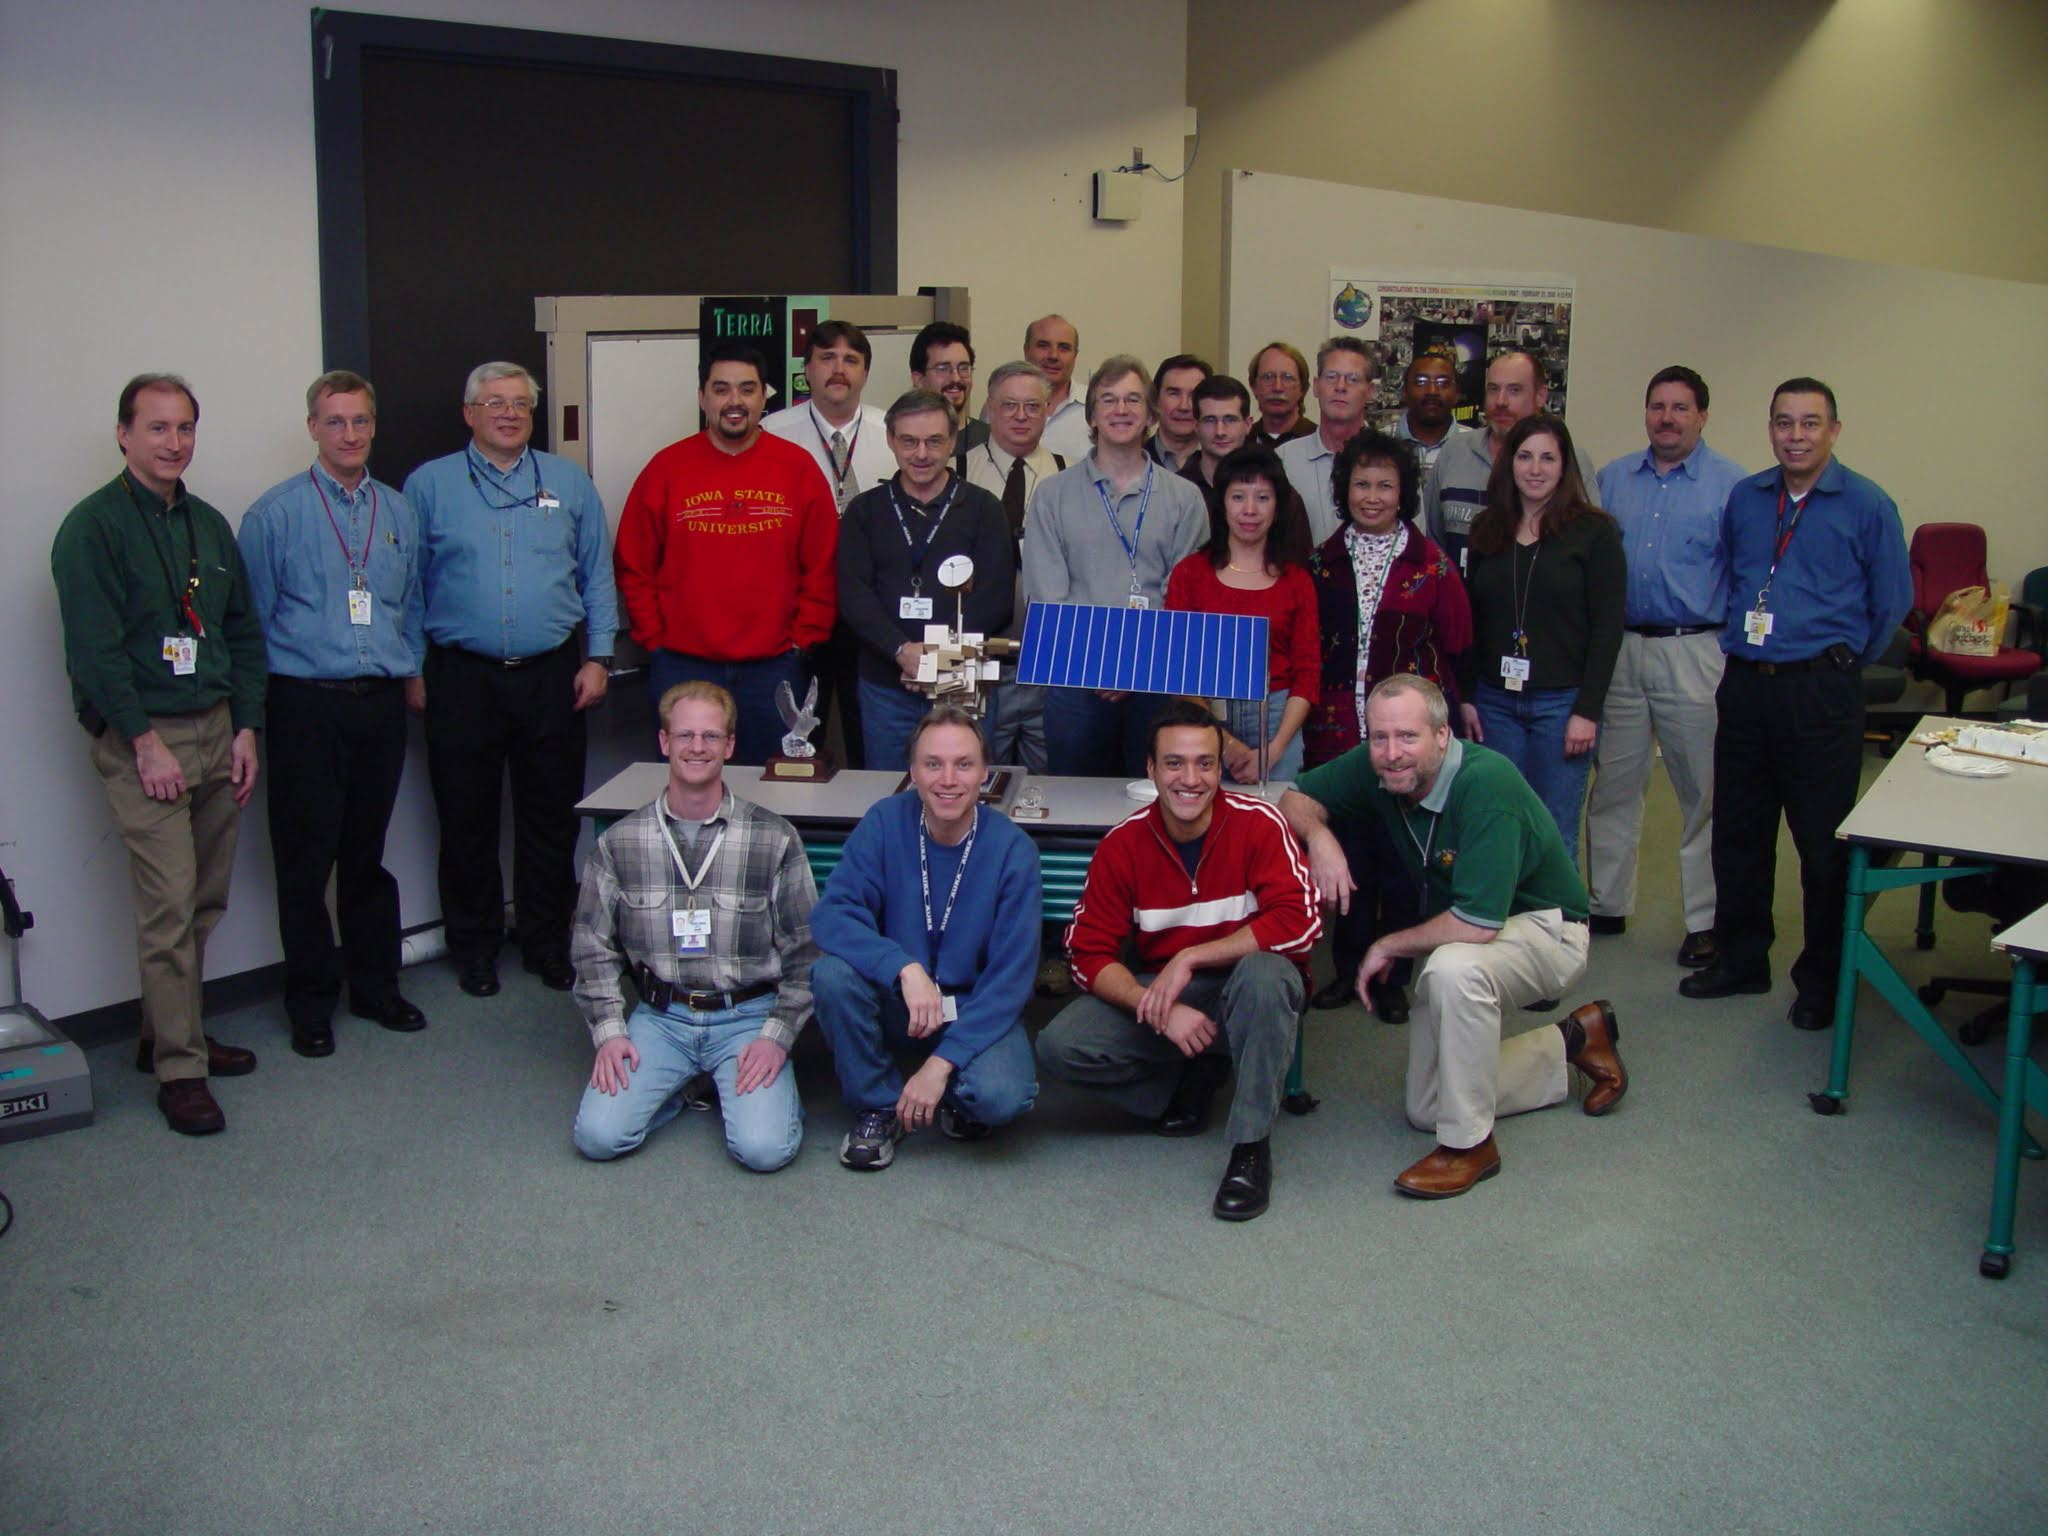 Celebrating the 10th anniversary of Terra in 2009, the flight operations leads and managers posed around a model of the satellite.